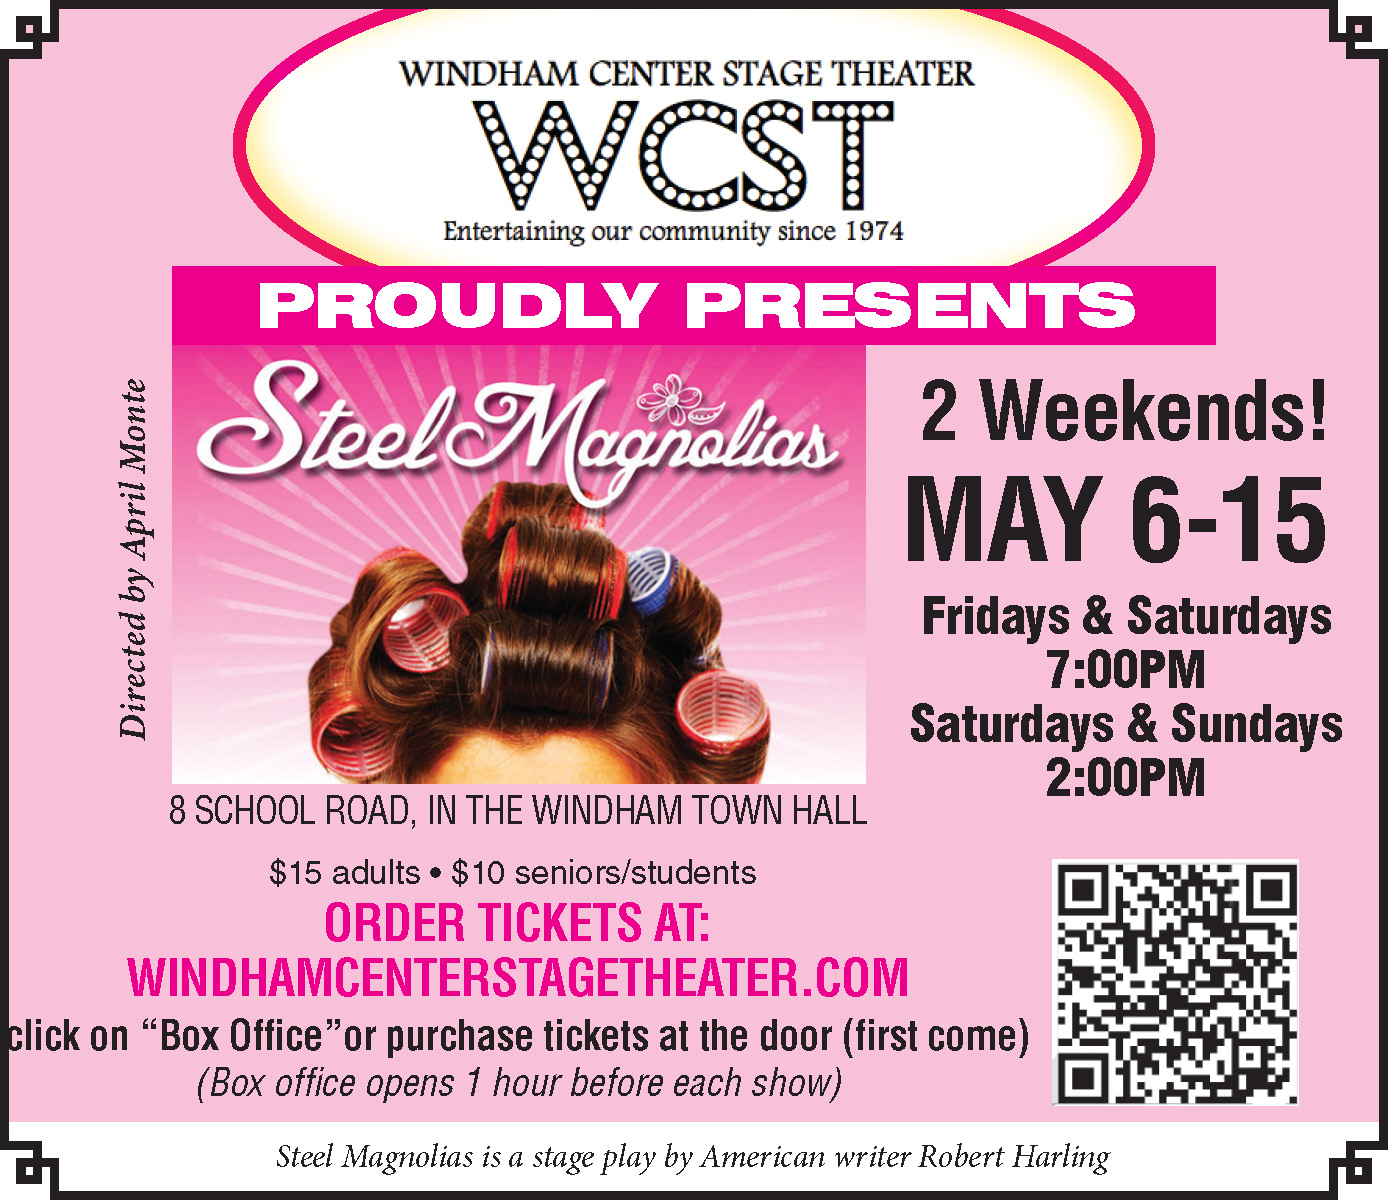 http://windhamtheater.org/